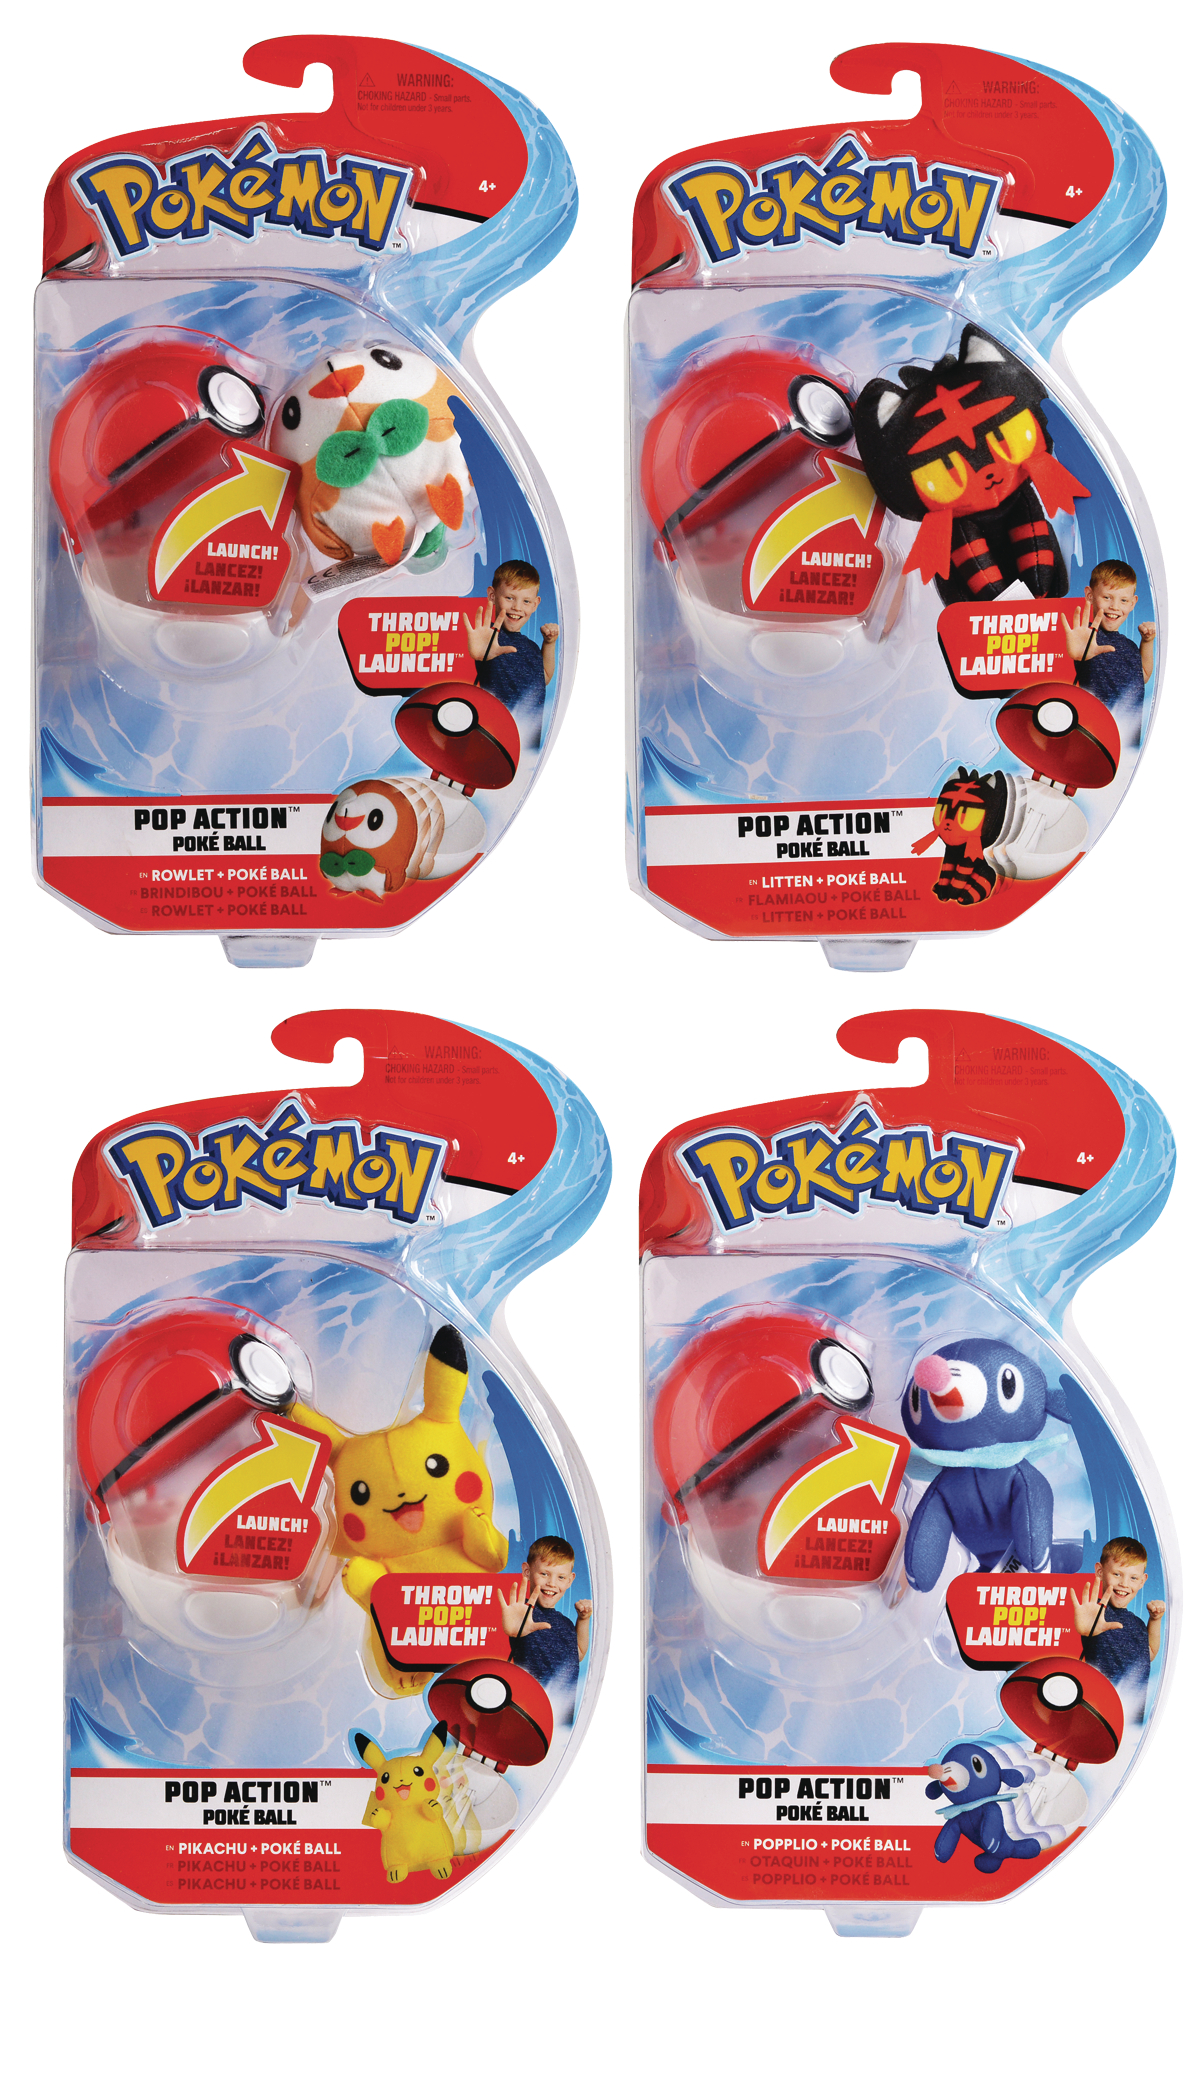 POKEMON POP-ACTION POKEBALL ASST